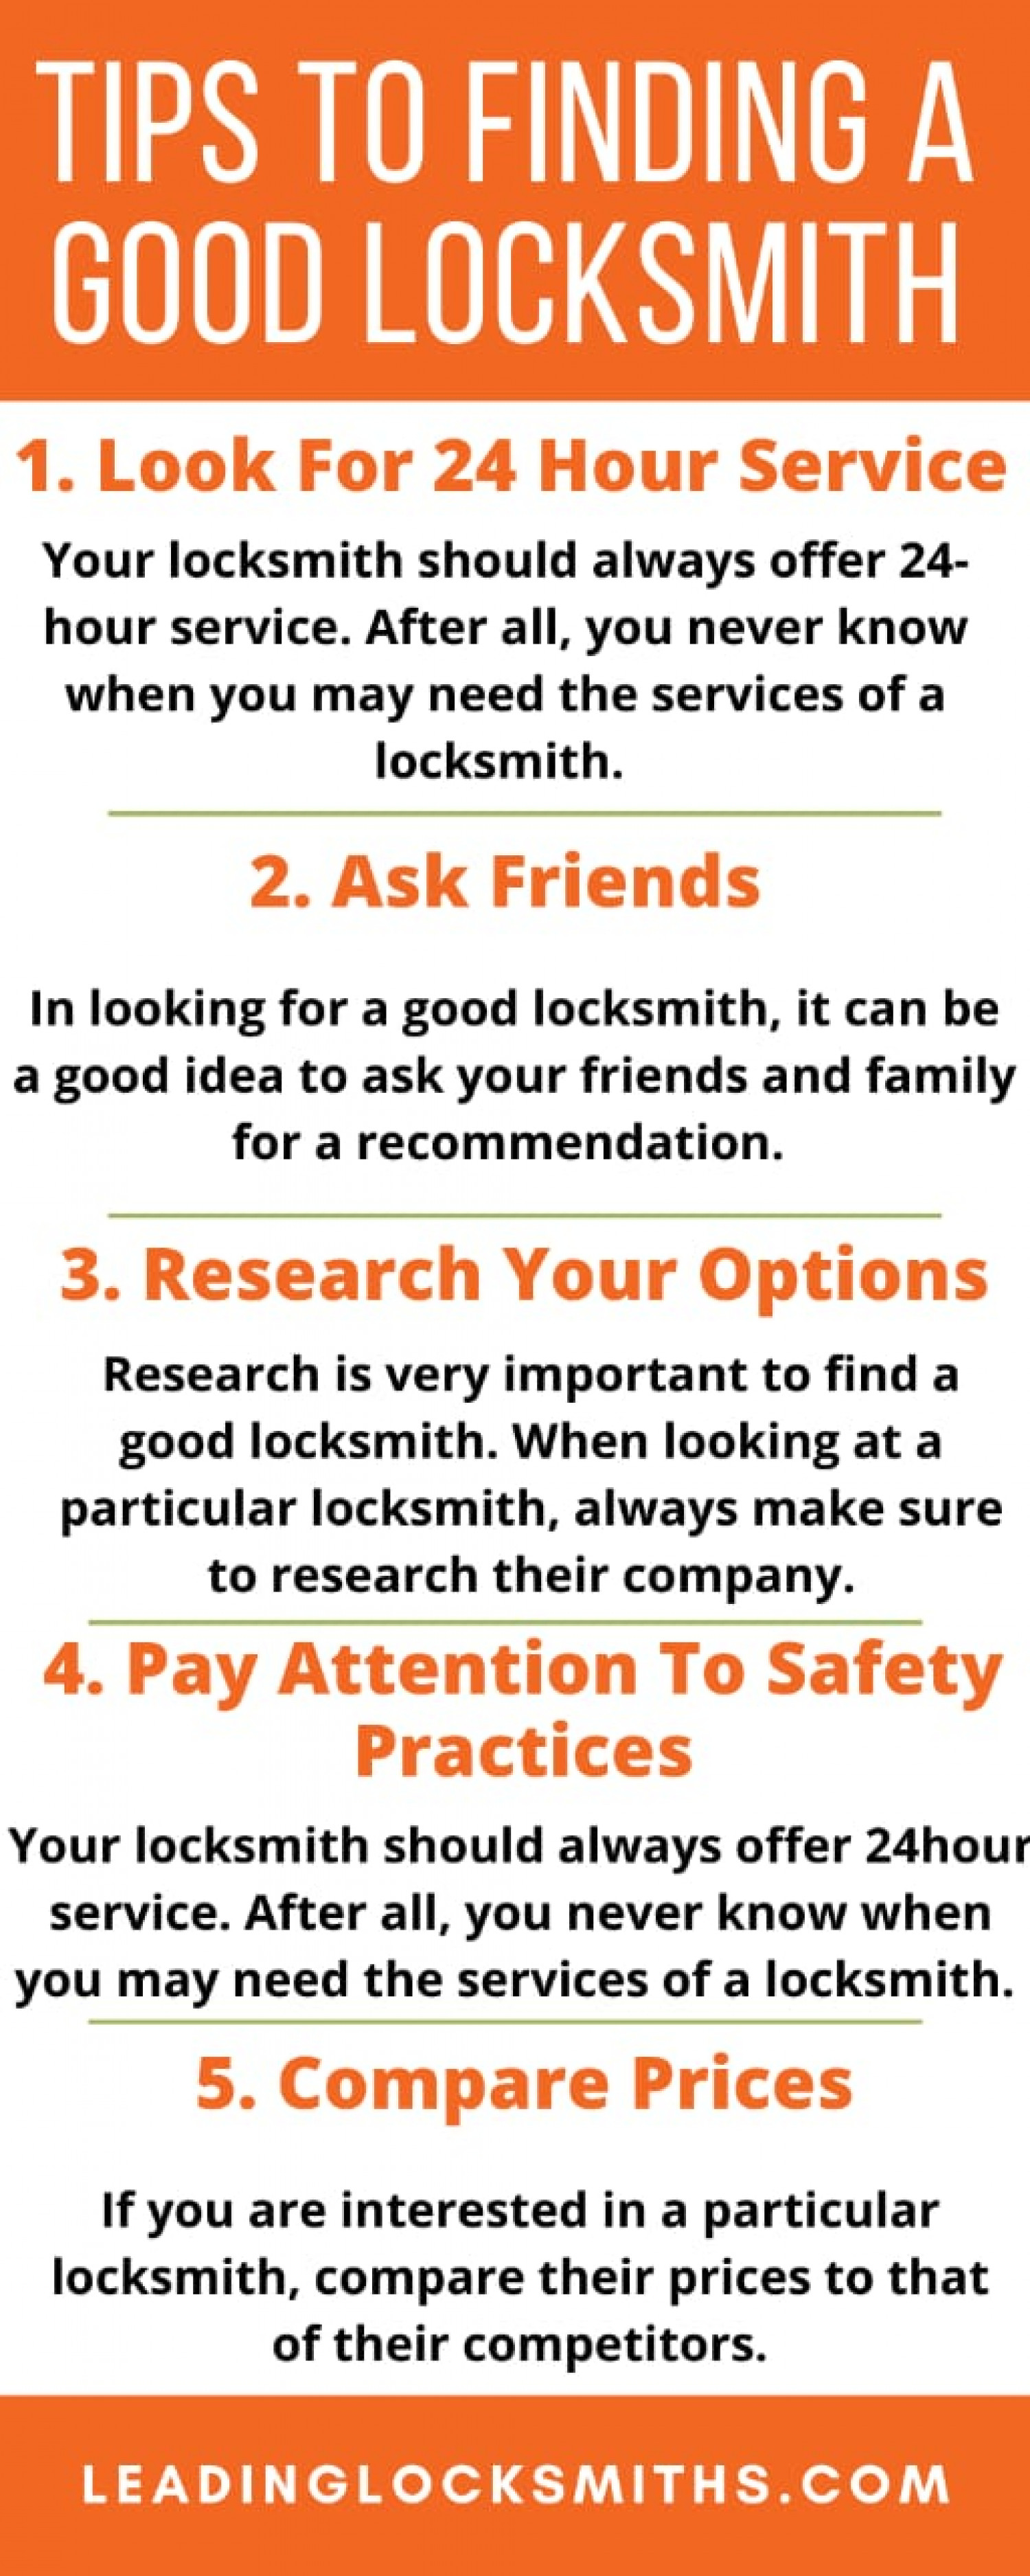 5 Interesting Facts About Locksmith Infographic